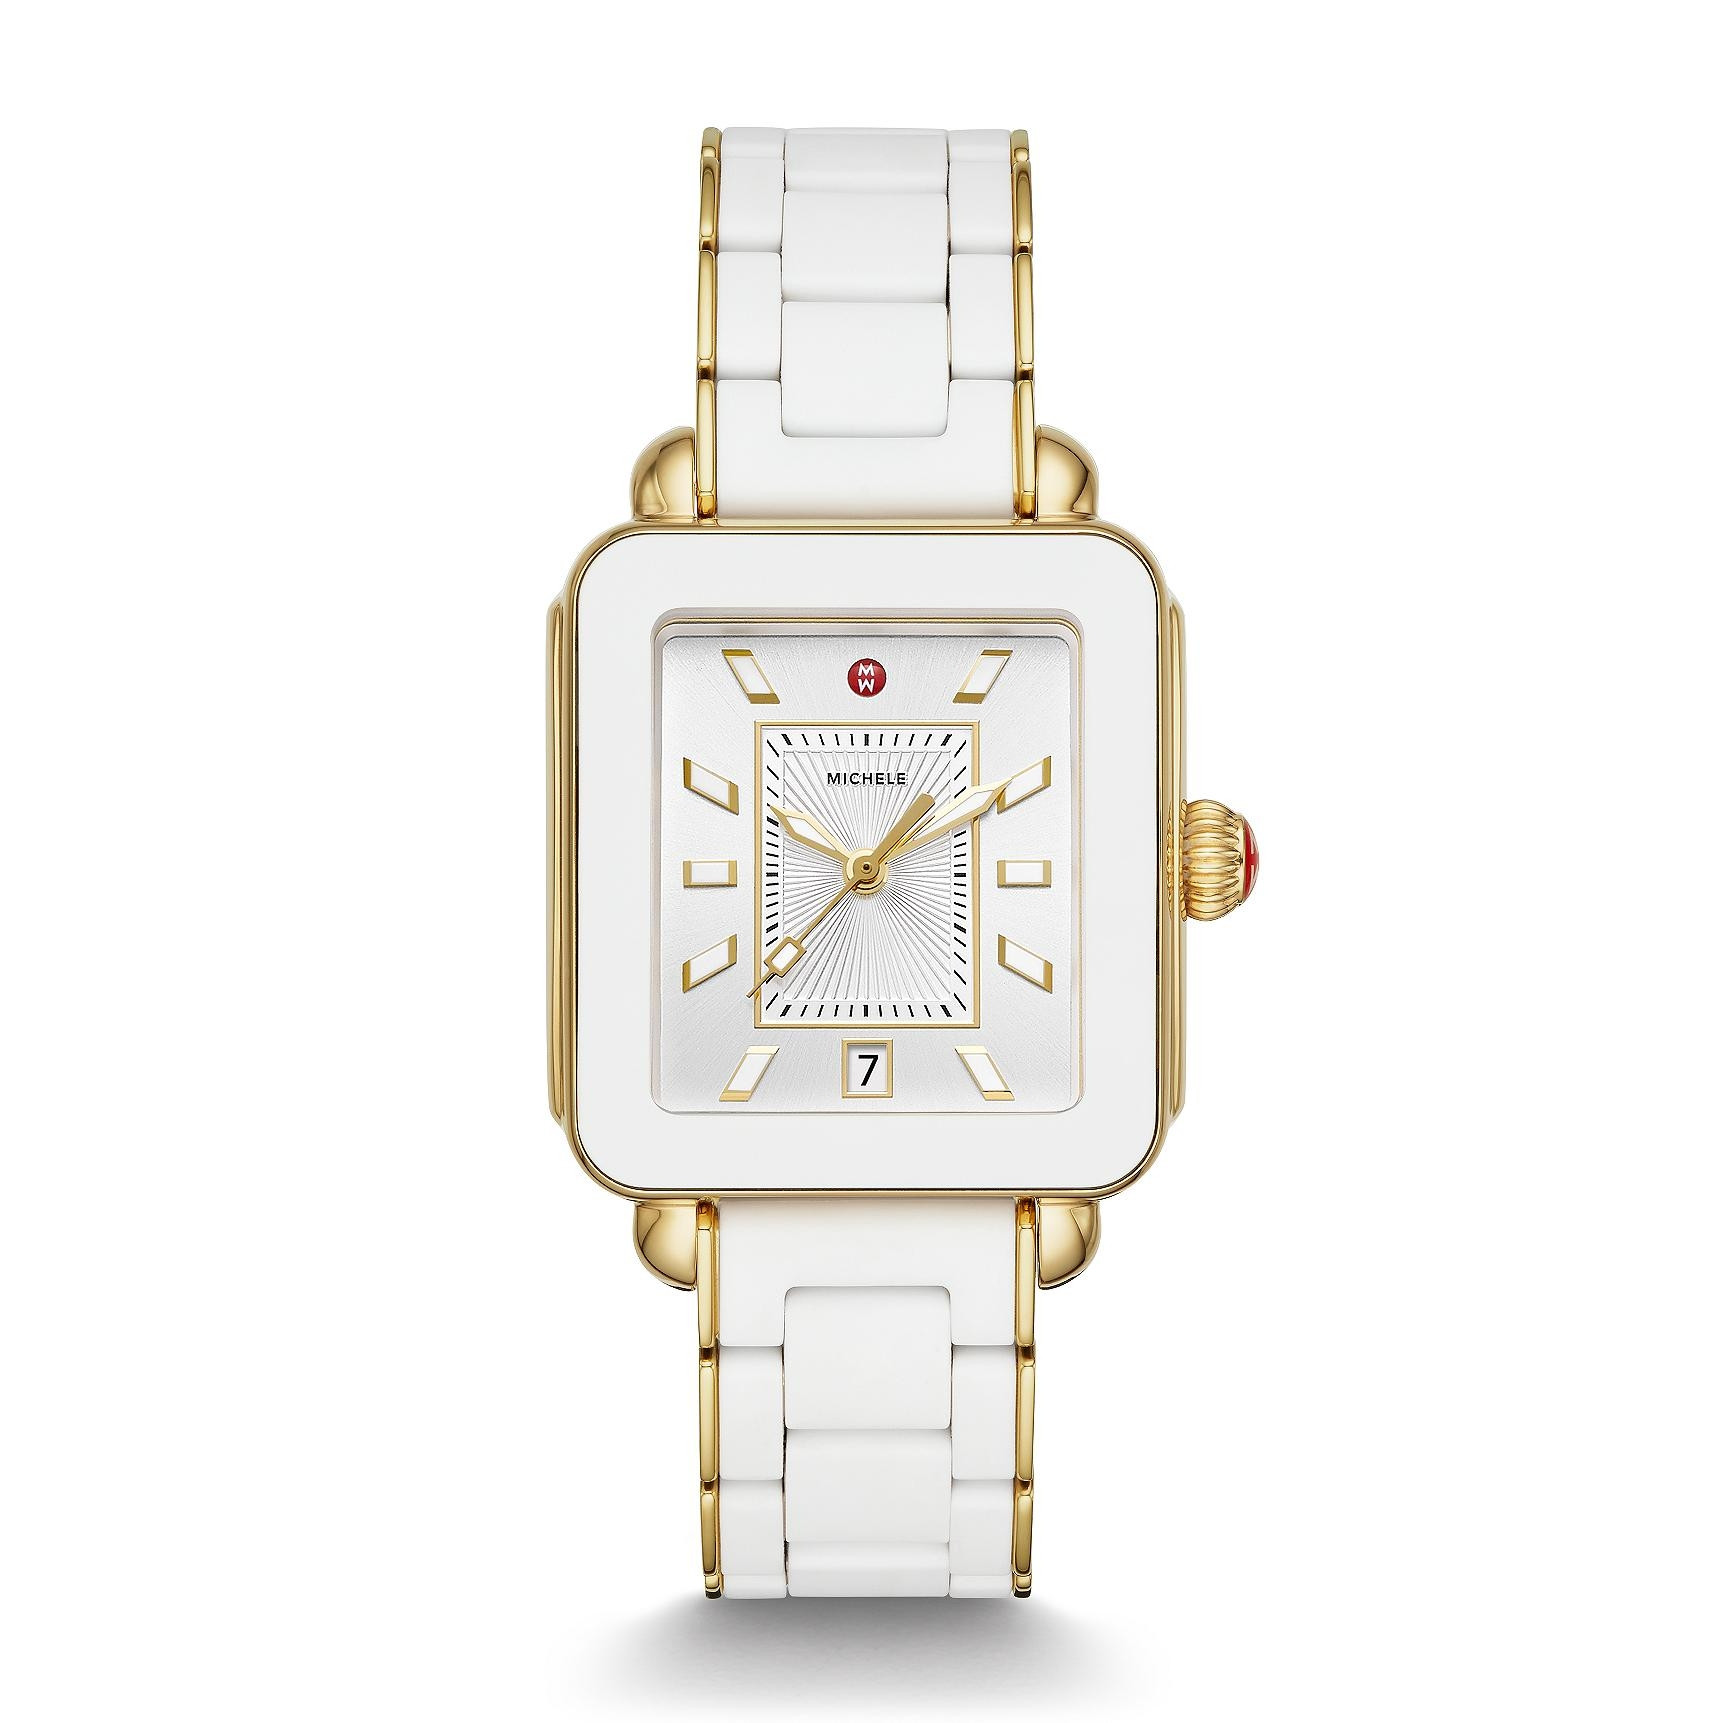 Michele Deco Sport White And Gold Watch On Rubber Link Strap